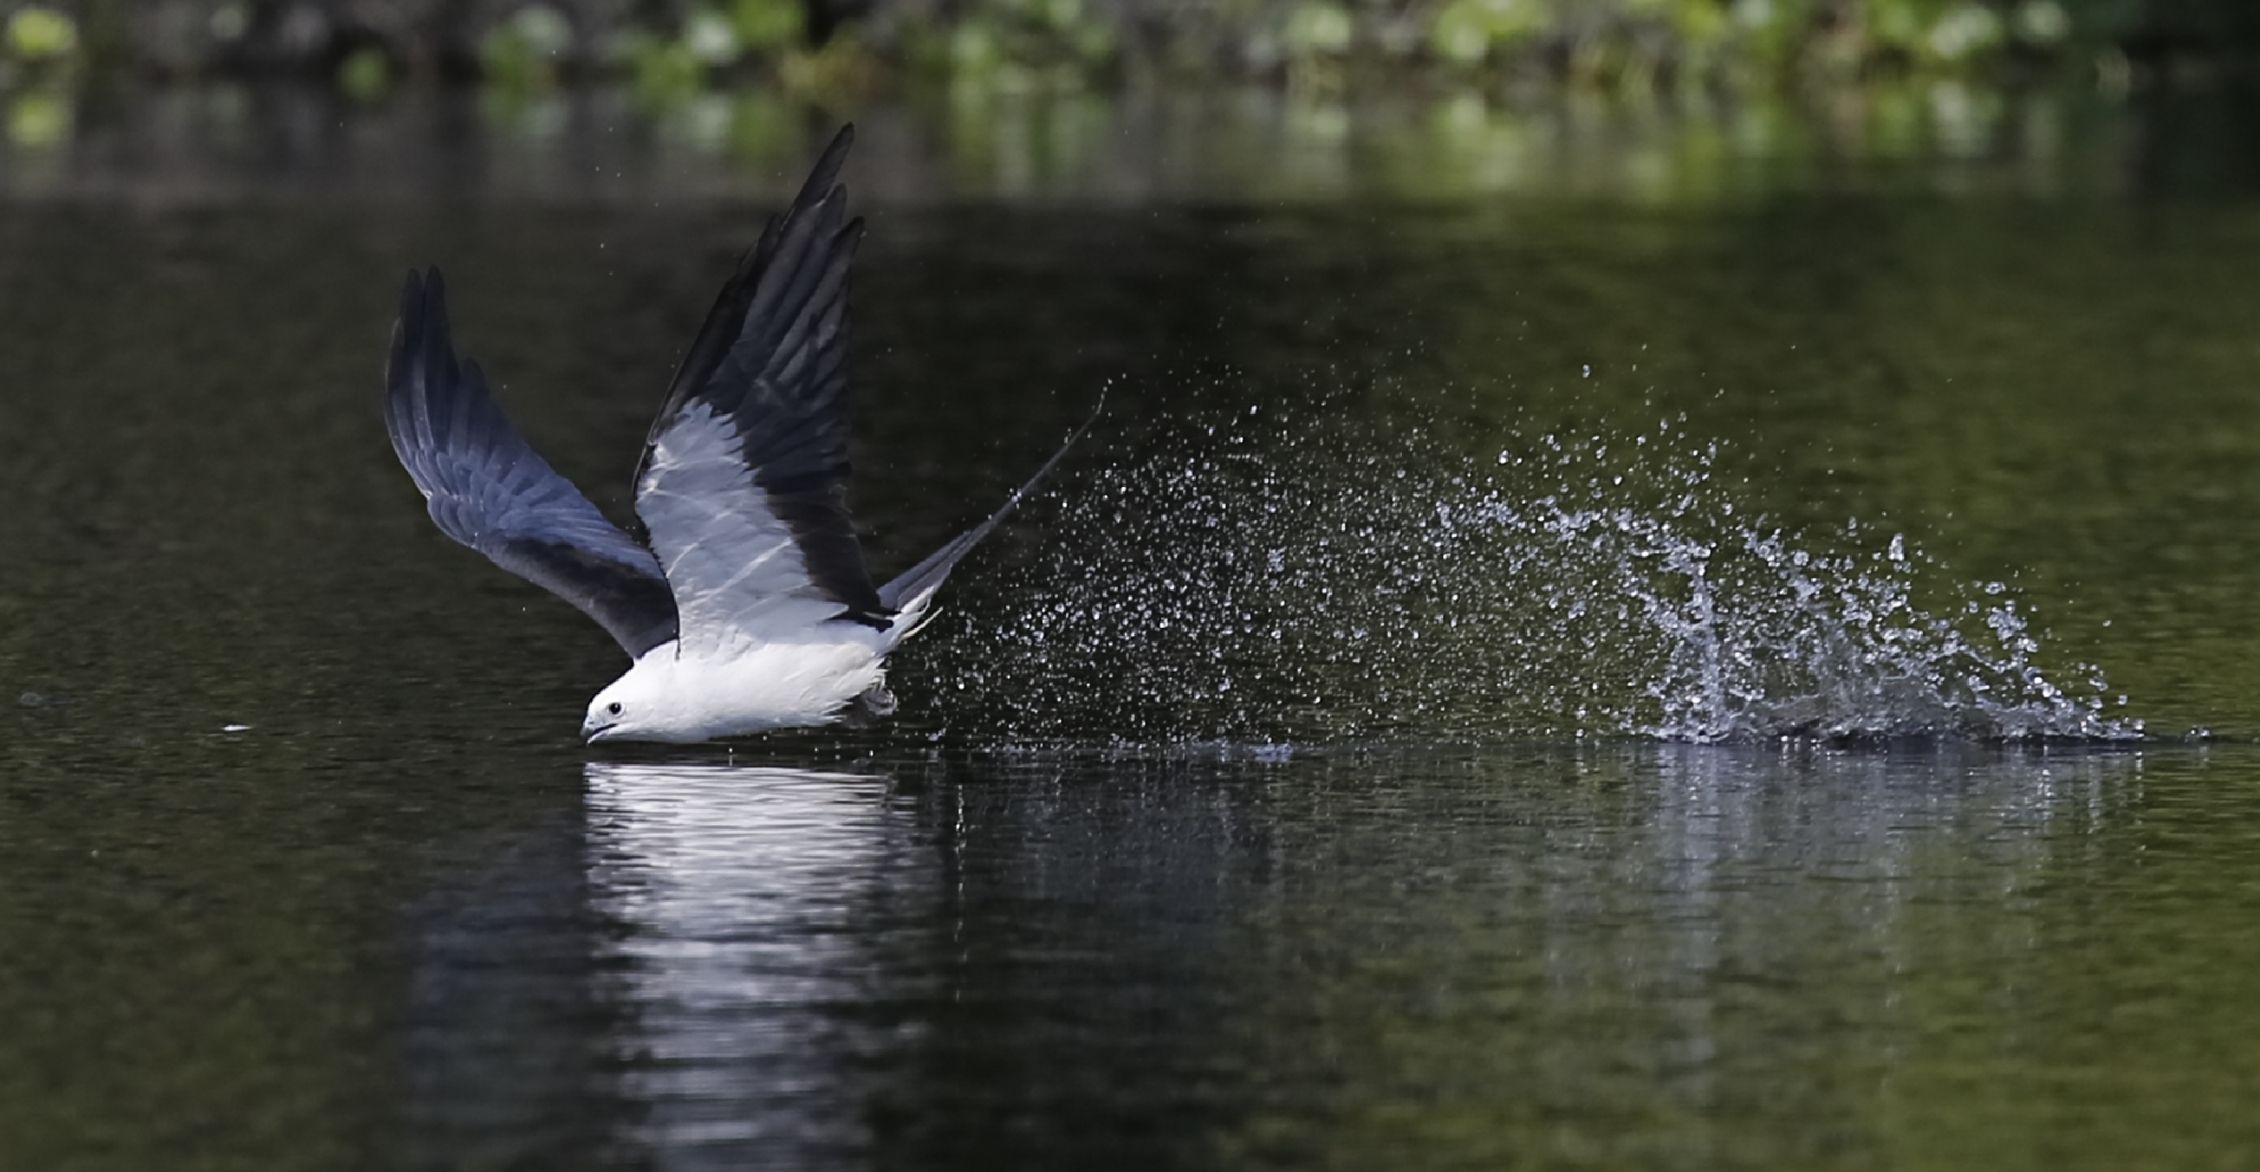 Early skimming activity shot in lower light conditions..